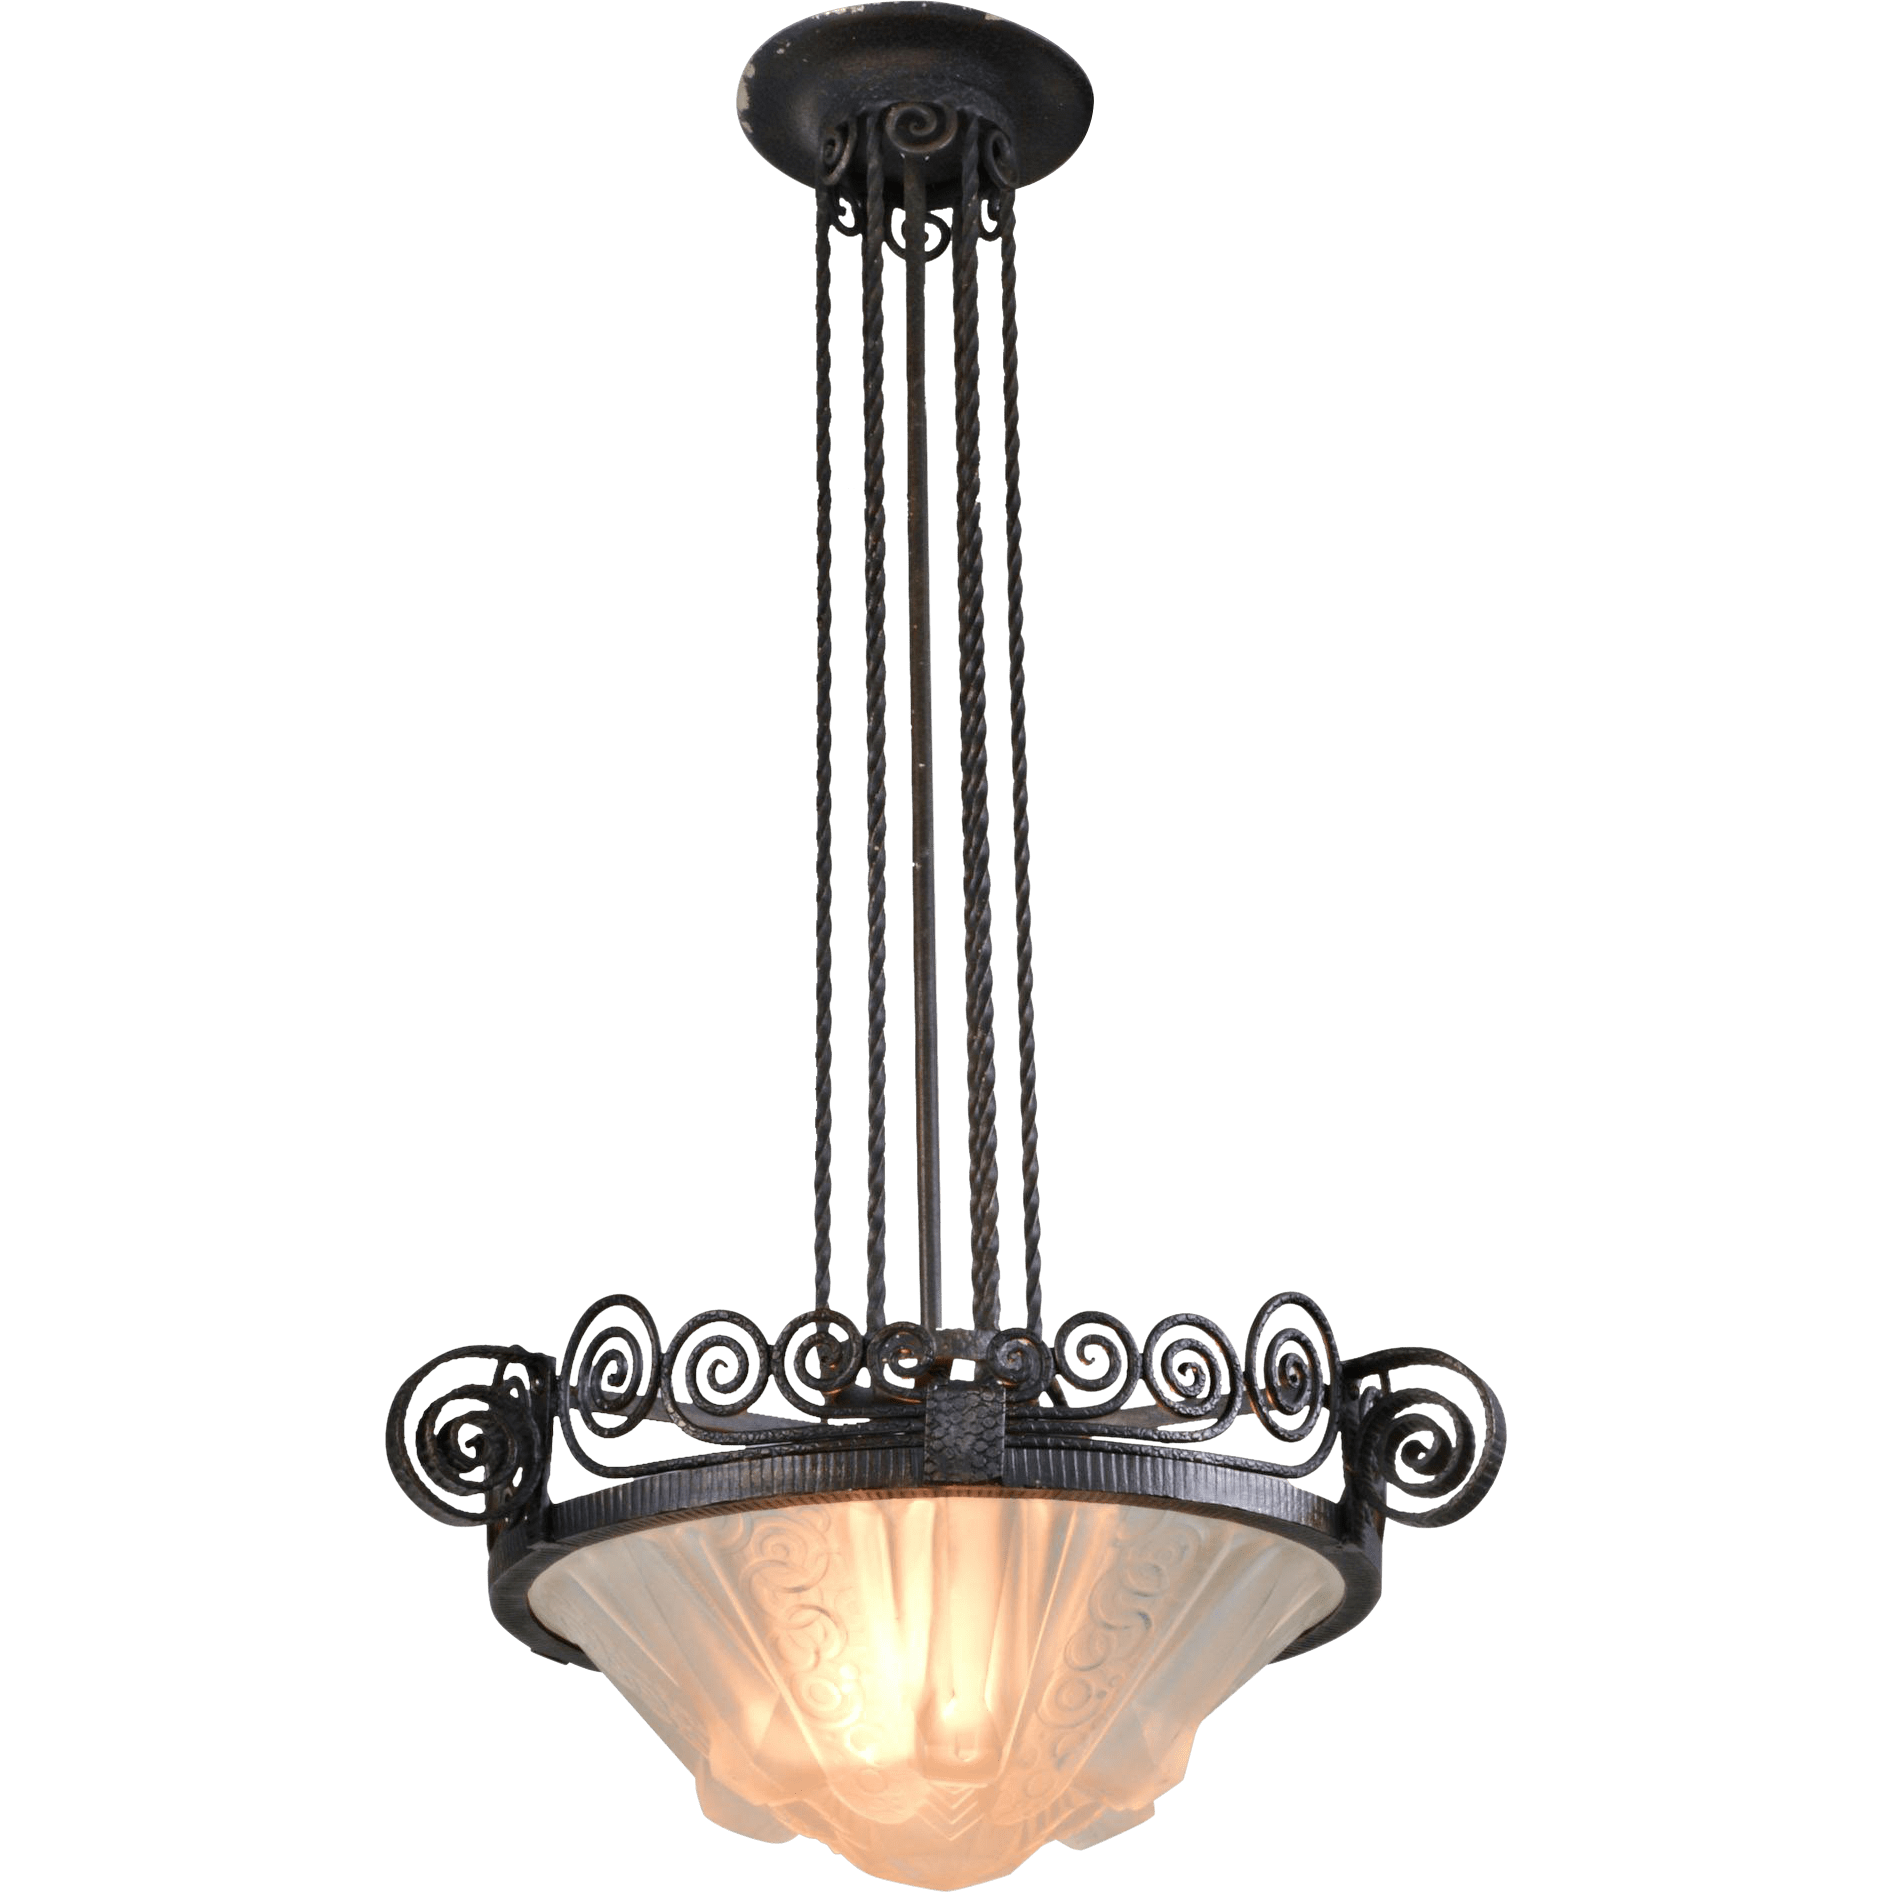 Porcelain Light Fixture